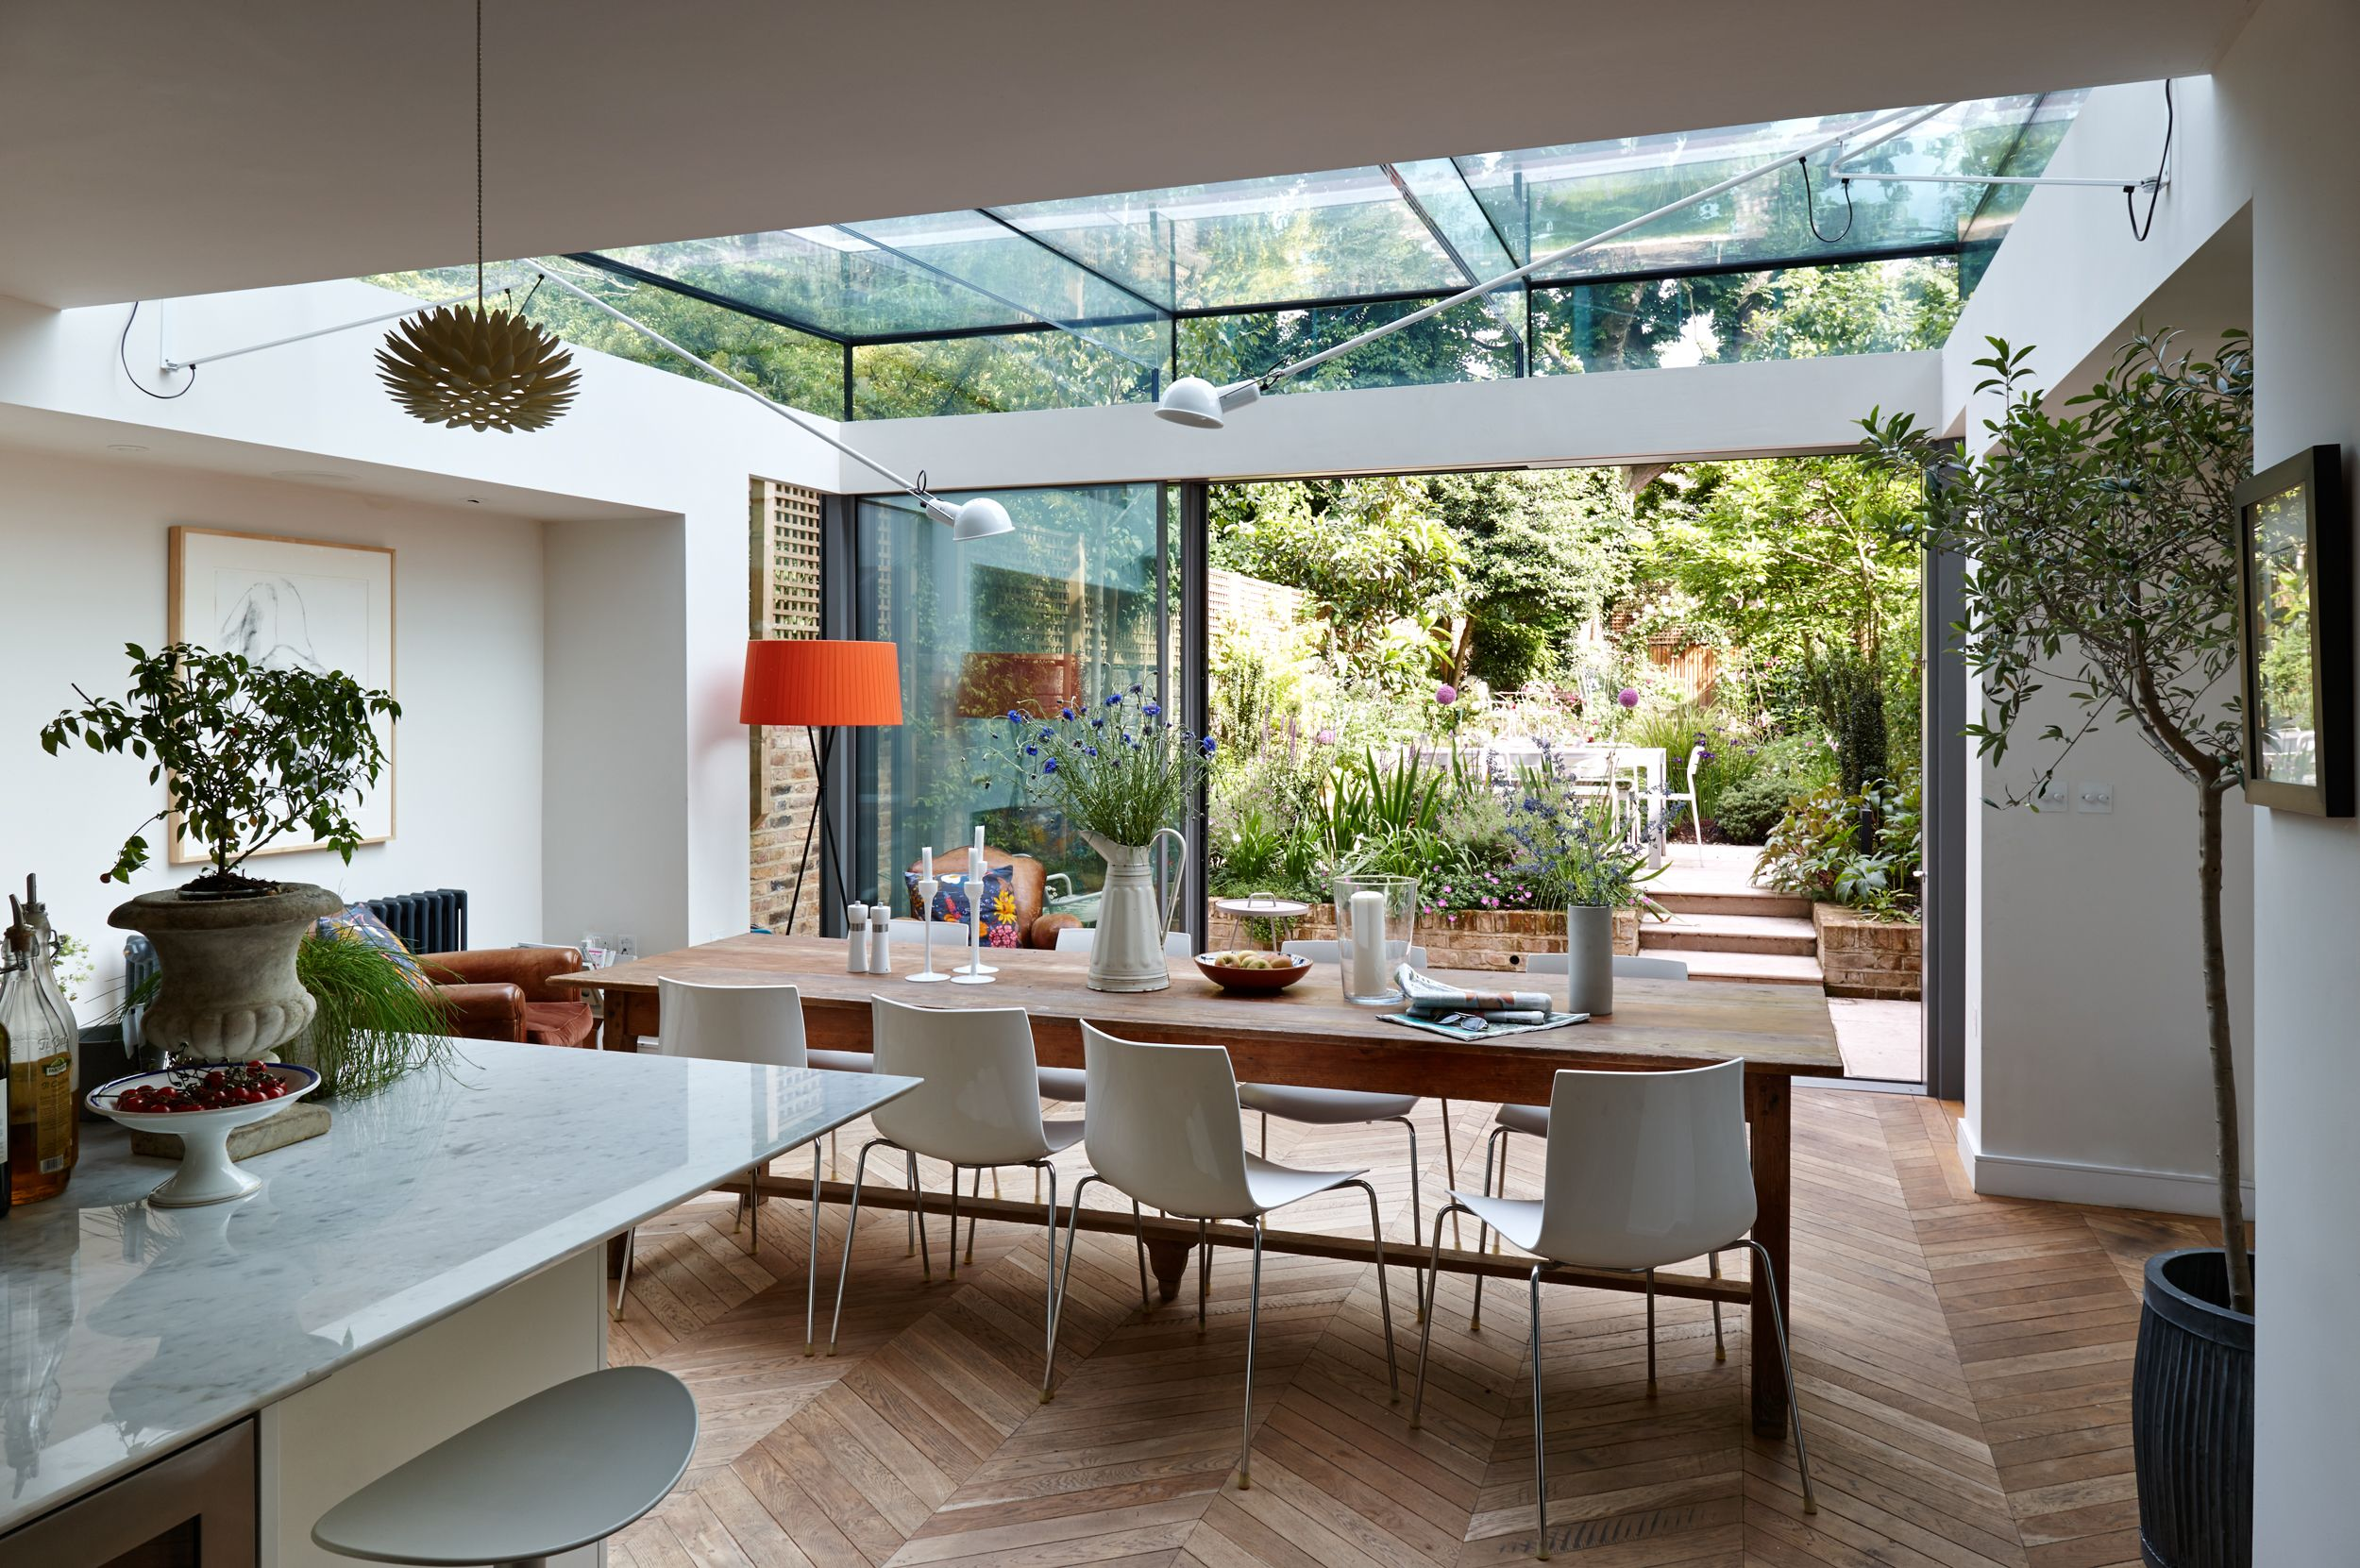 Charming Trombe   Internal Photo Of A Dining Room Extension In London. It  Incorporates A Structurally Glazed Roof Supported On Laminated Glass Fins  And Beams.